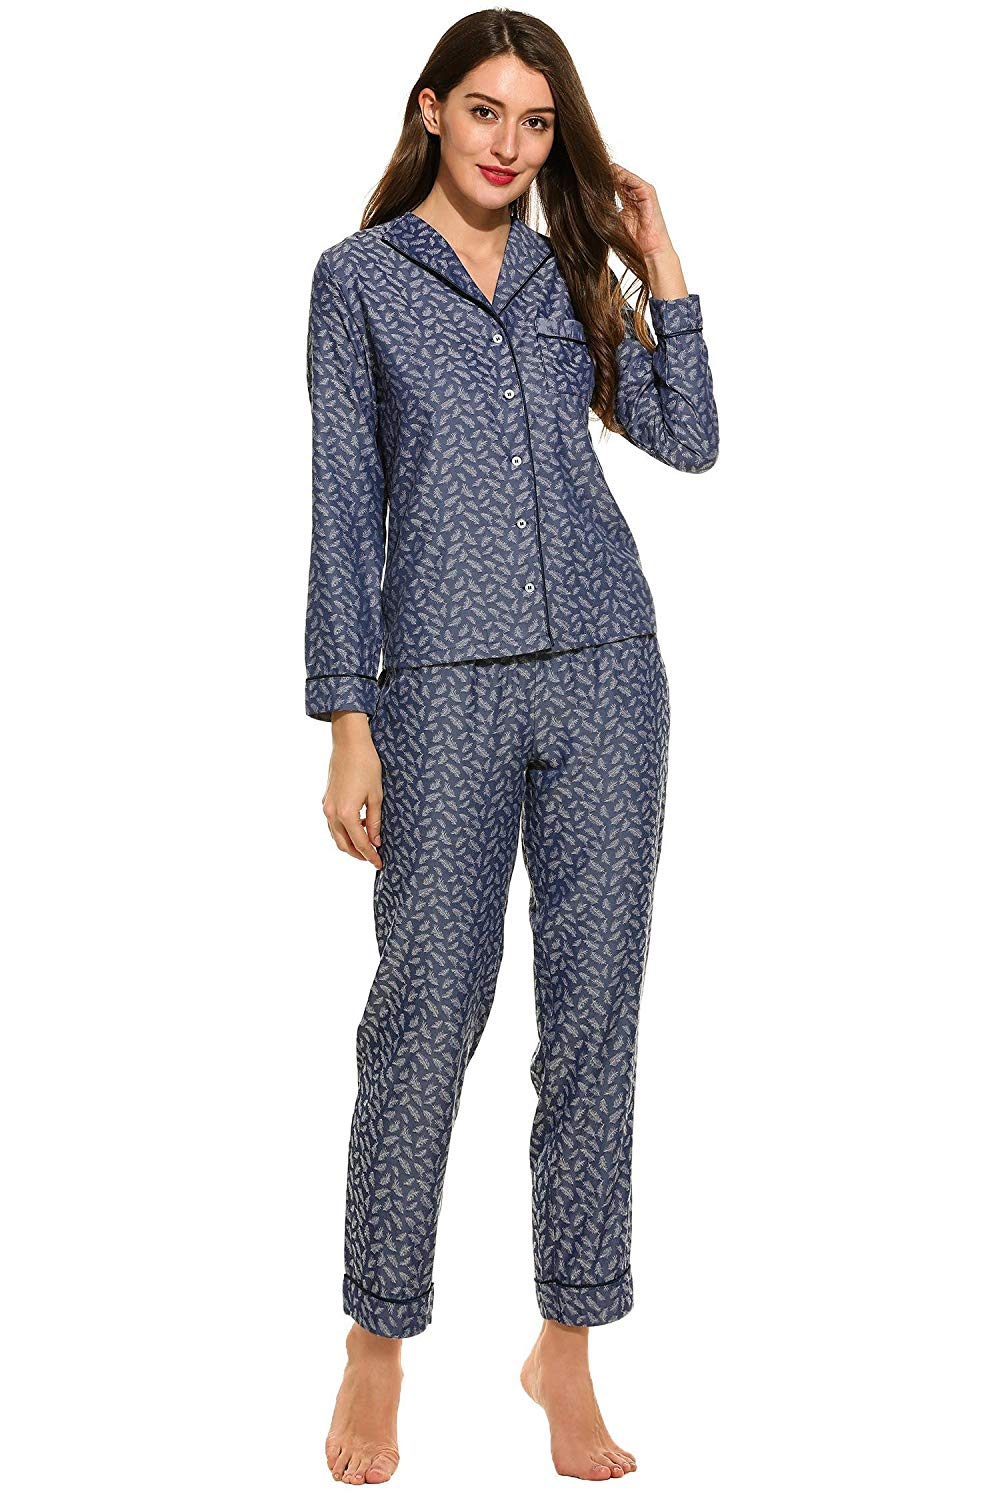 a026d0e533 Get Quotations · Goodfans Soft Pajama Sets Casual Pajama Sets Pajama Sets  for Women Casual Summer Pajama Sets Sets